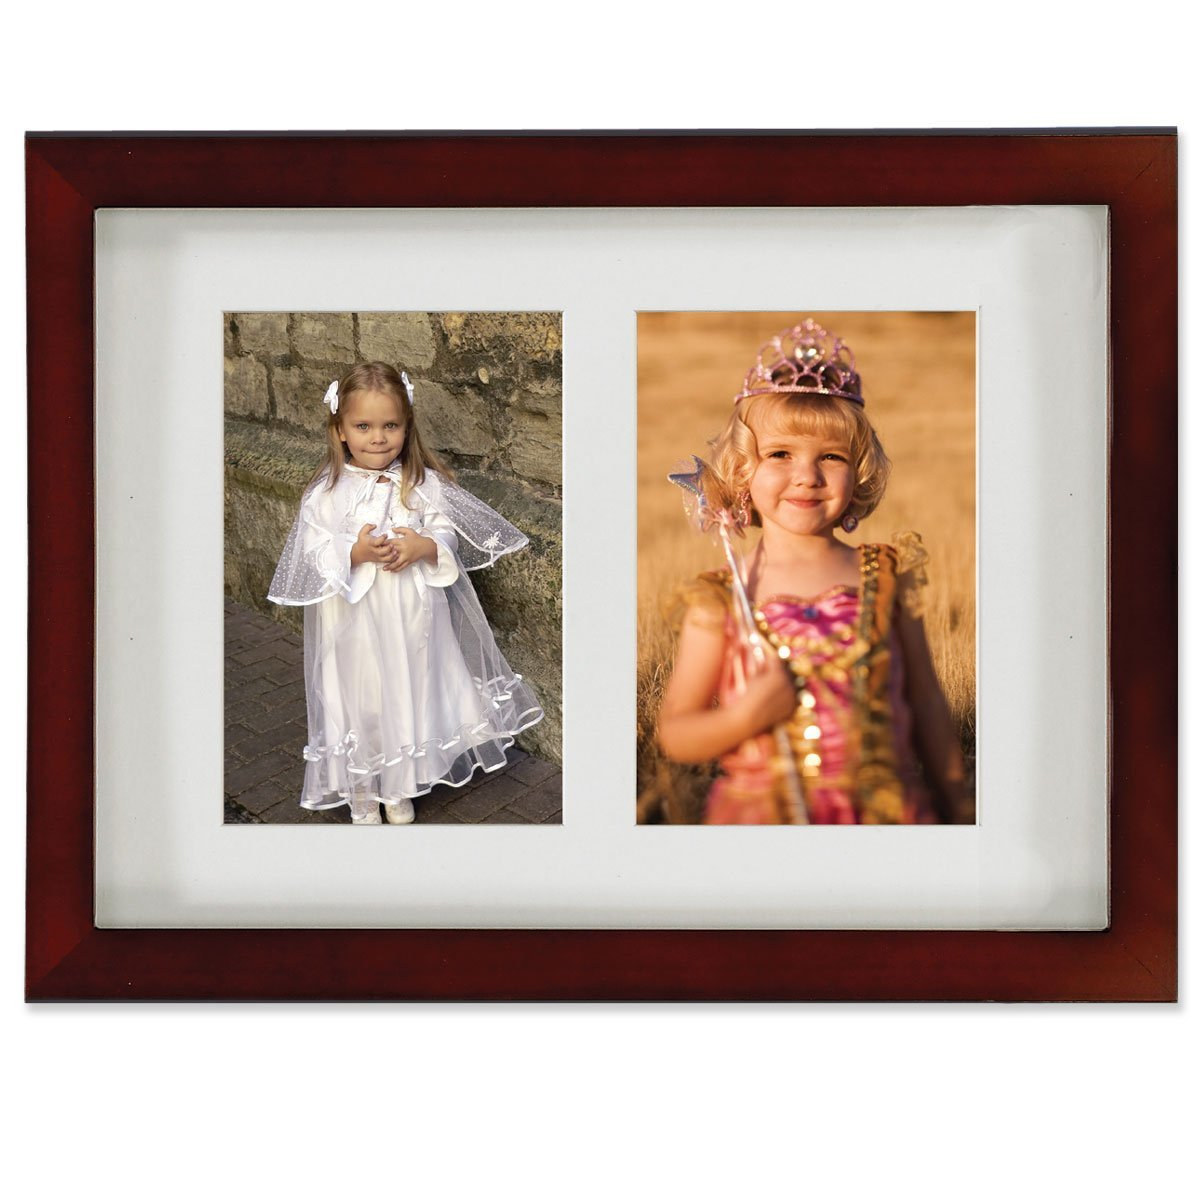 Buy 11x11 Graduation Wood Frame with Double Matted Tassel Insert and ...